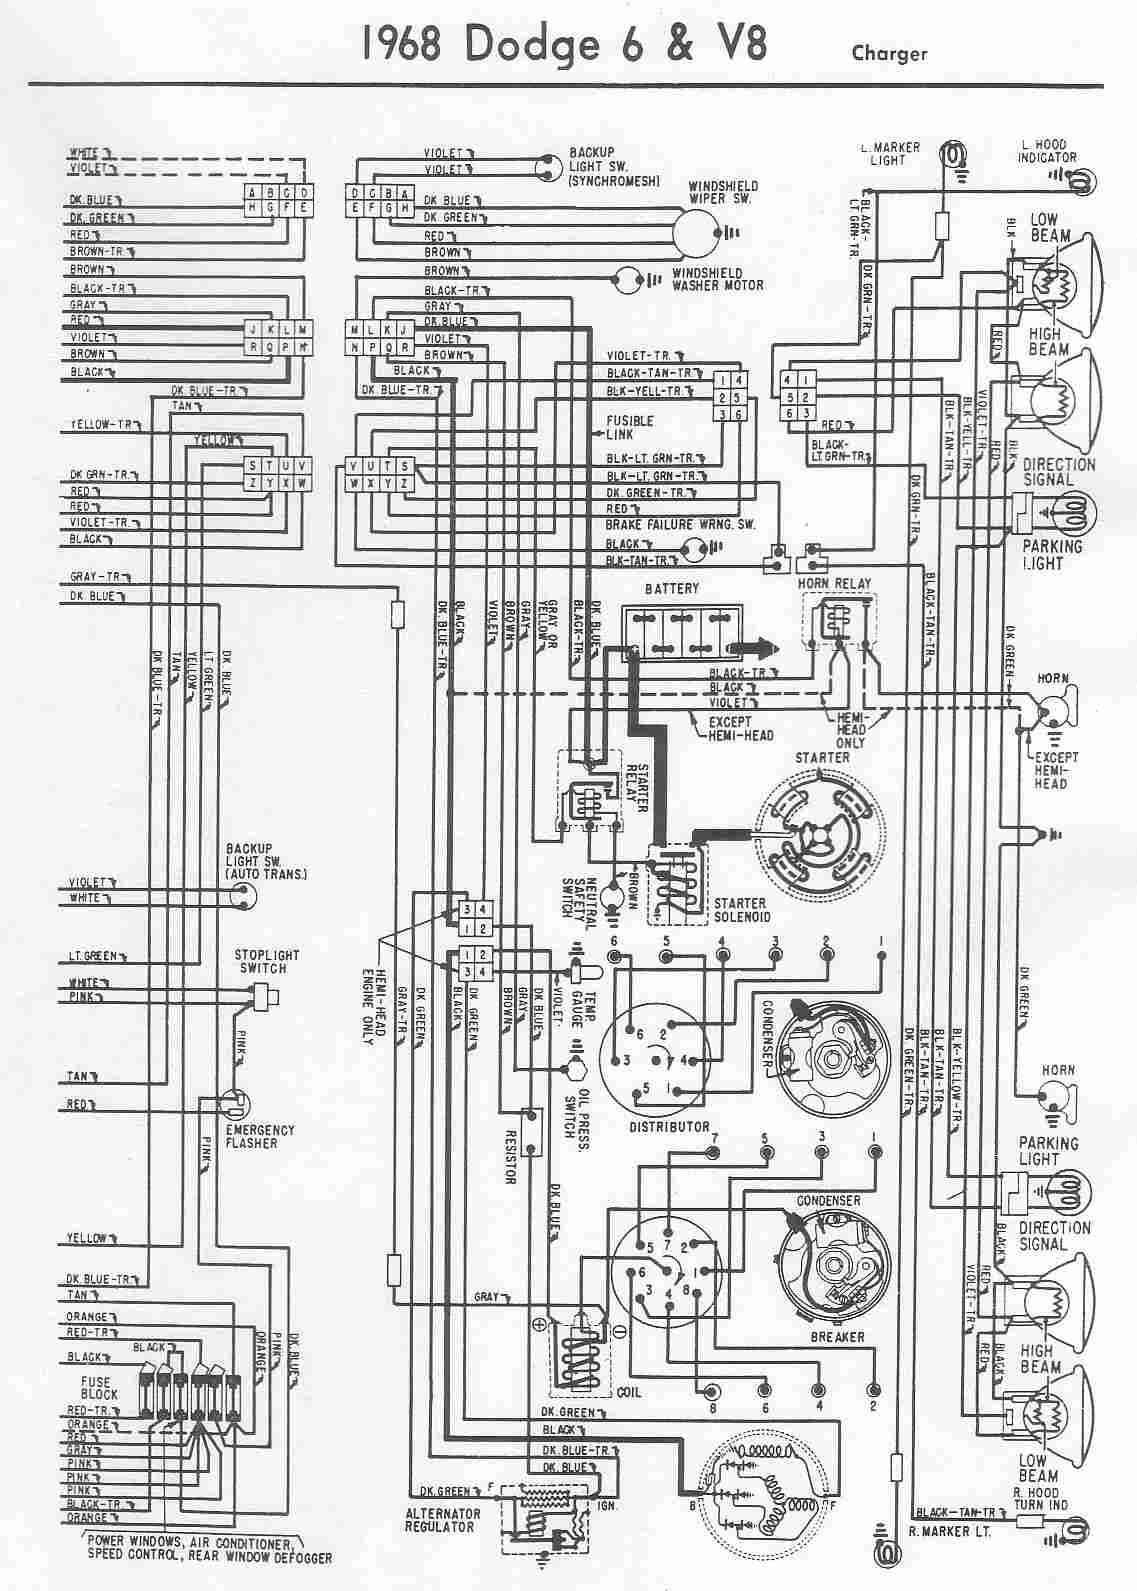 Dodge Car Manuals Wiring Diagrams Pdf Fault Codes 86 Engine Compartment Diagram Download